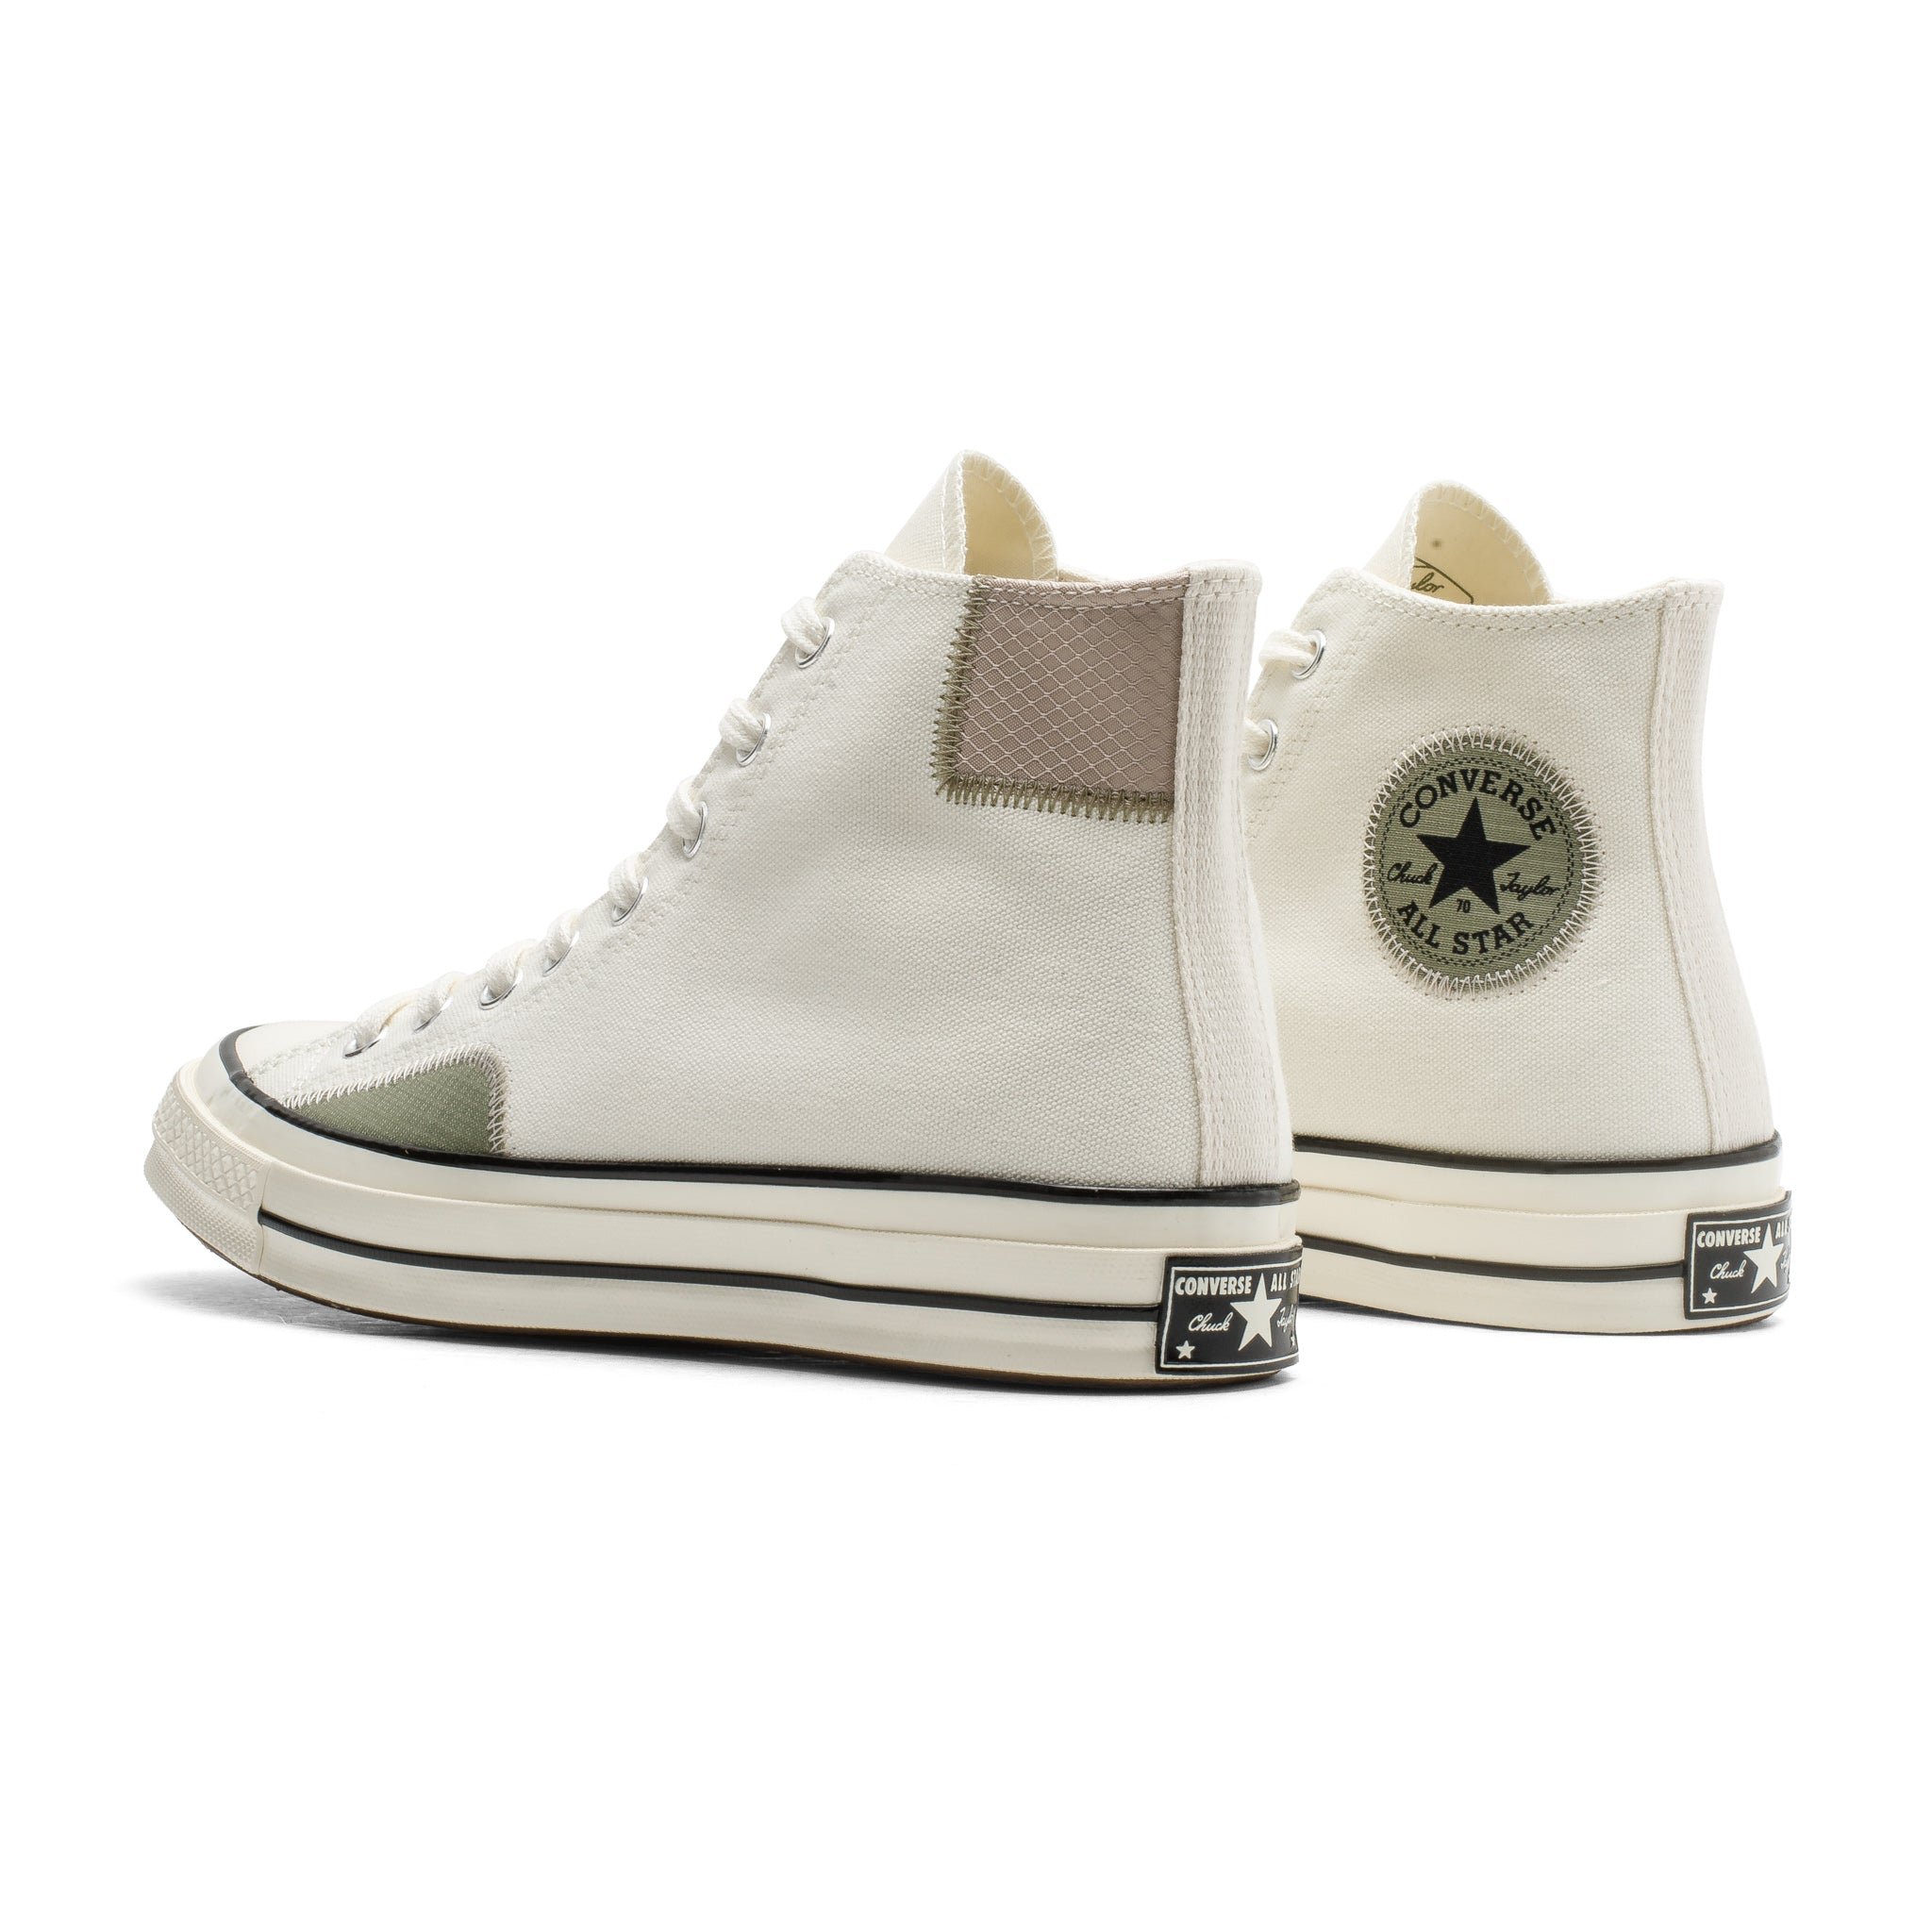 Chuck 70 HI 170128C EGRET/LIGHT FIELD SURPLUS